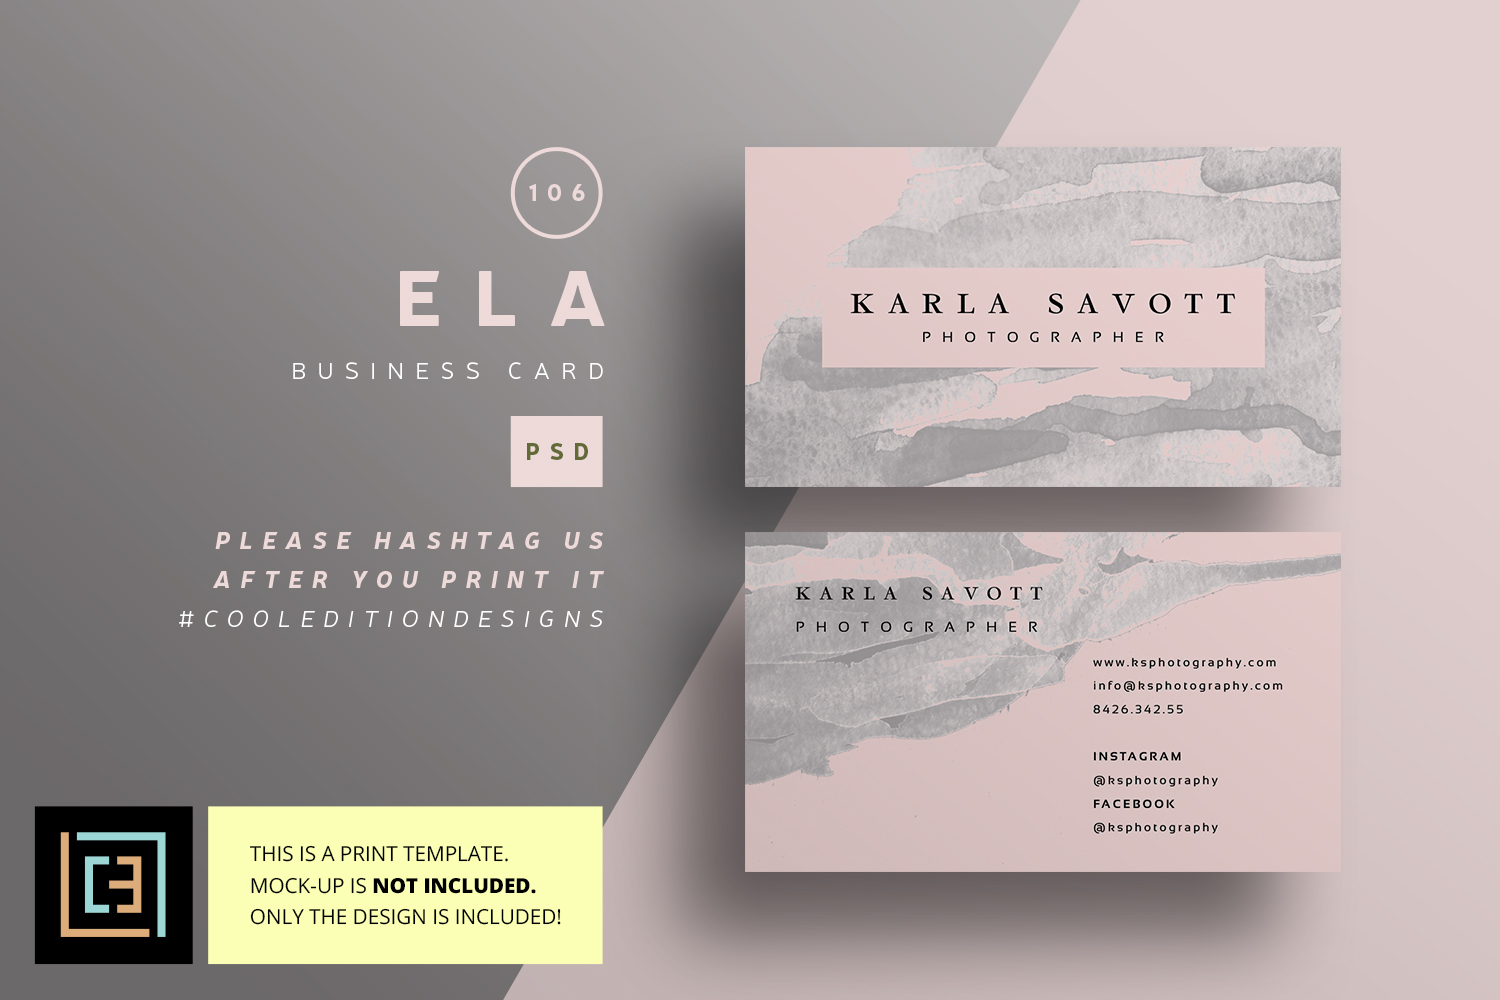 Ela business card bc106 by cooledition design bundles ela business card bc106 example image 1 cheaphphosting Image collections